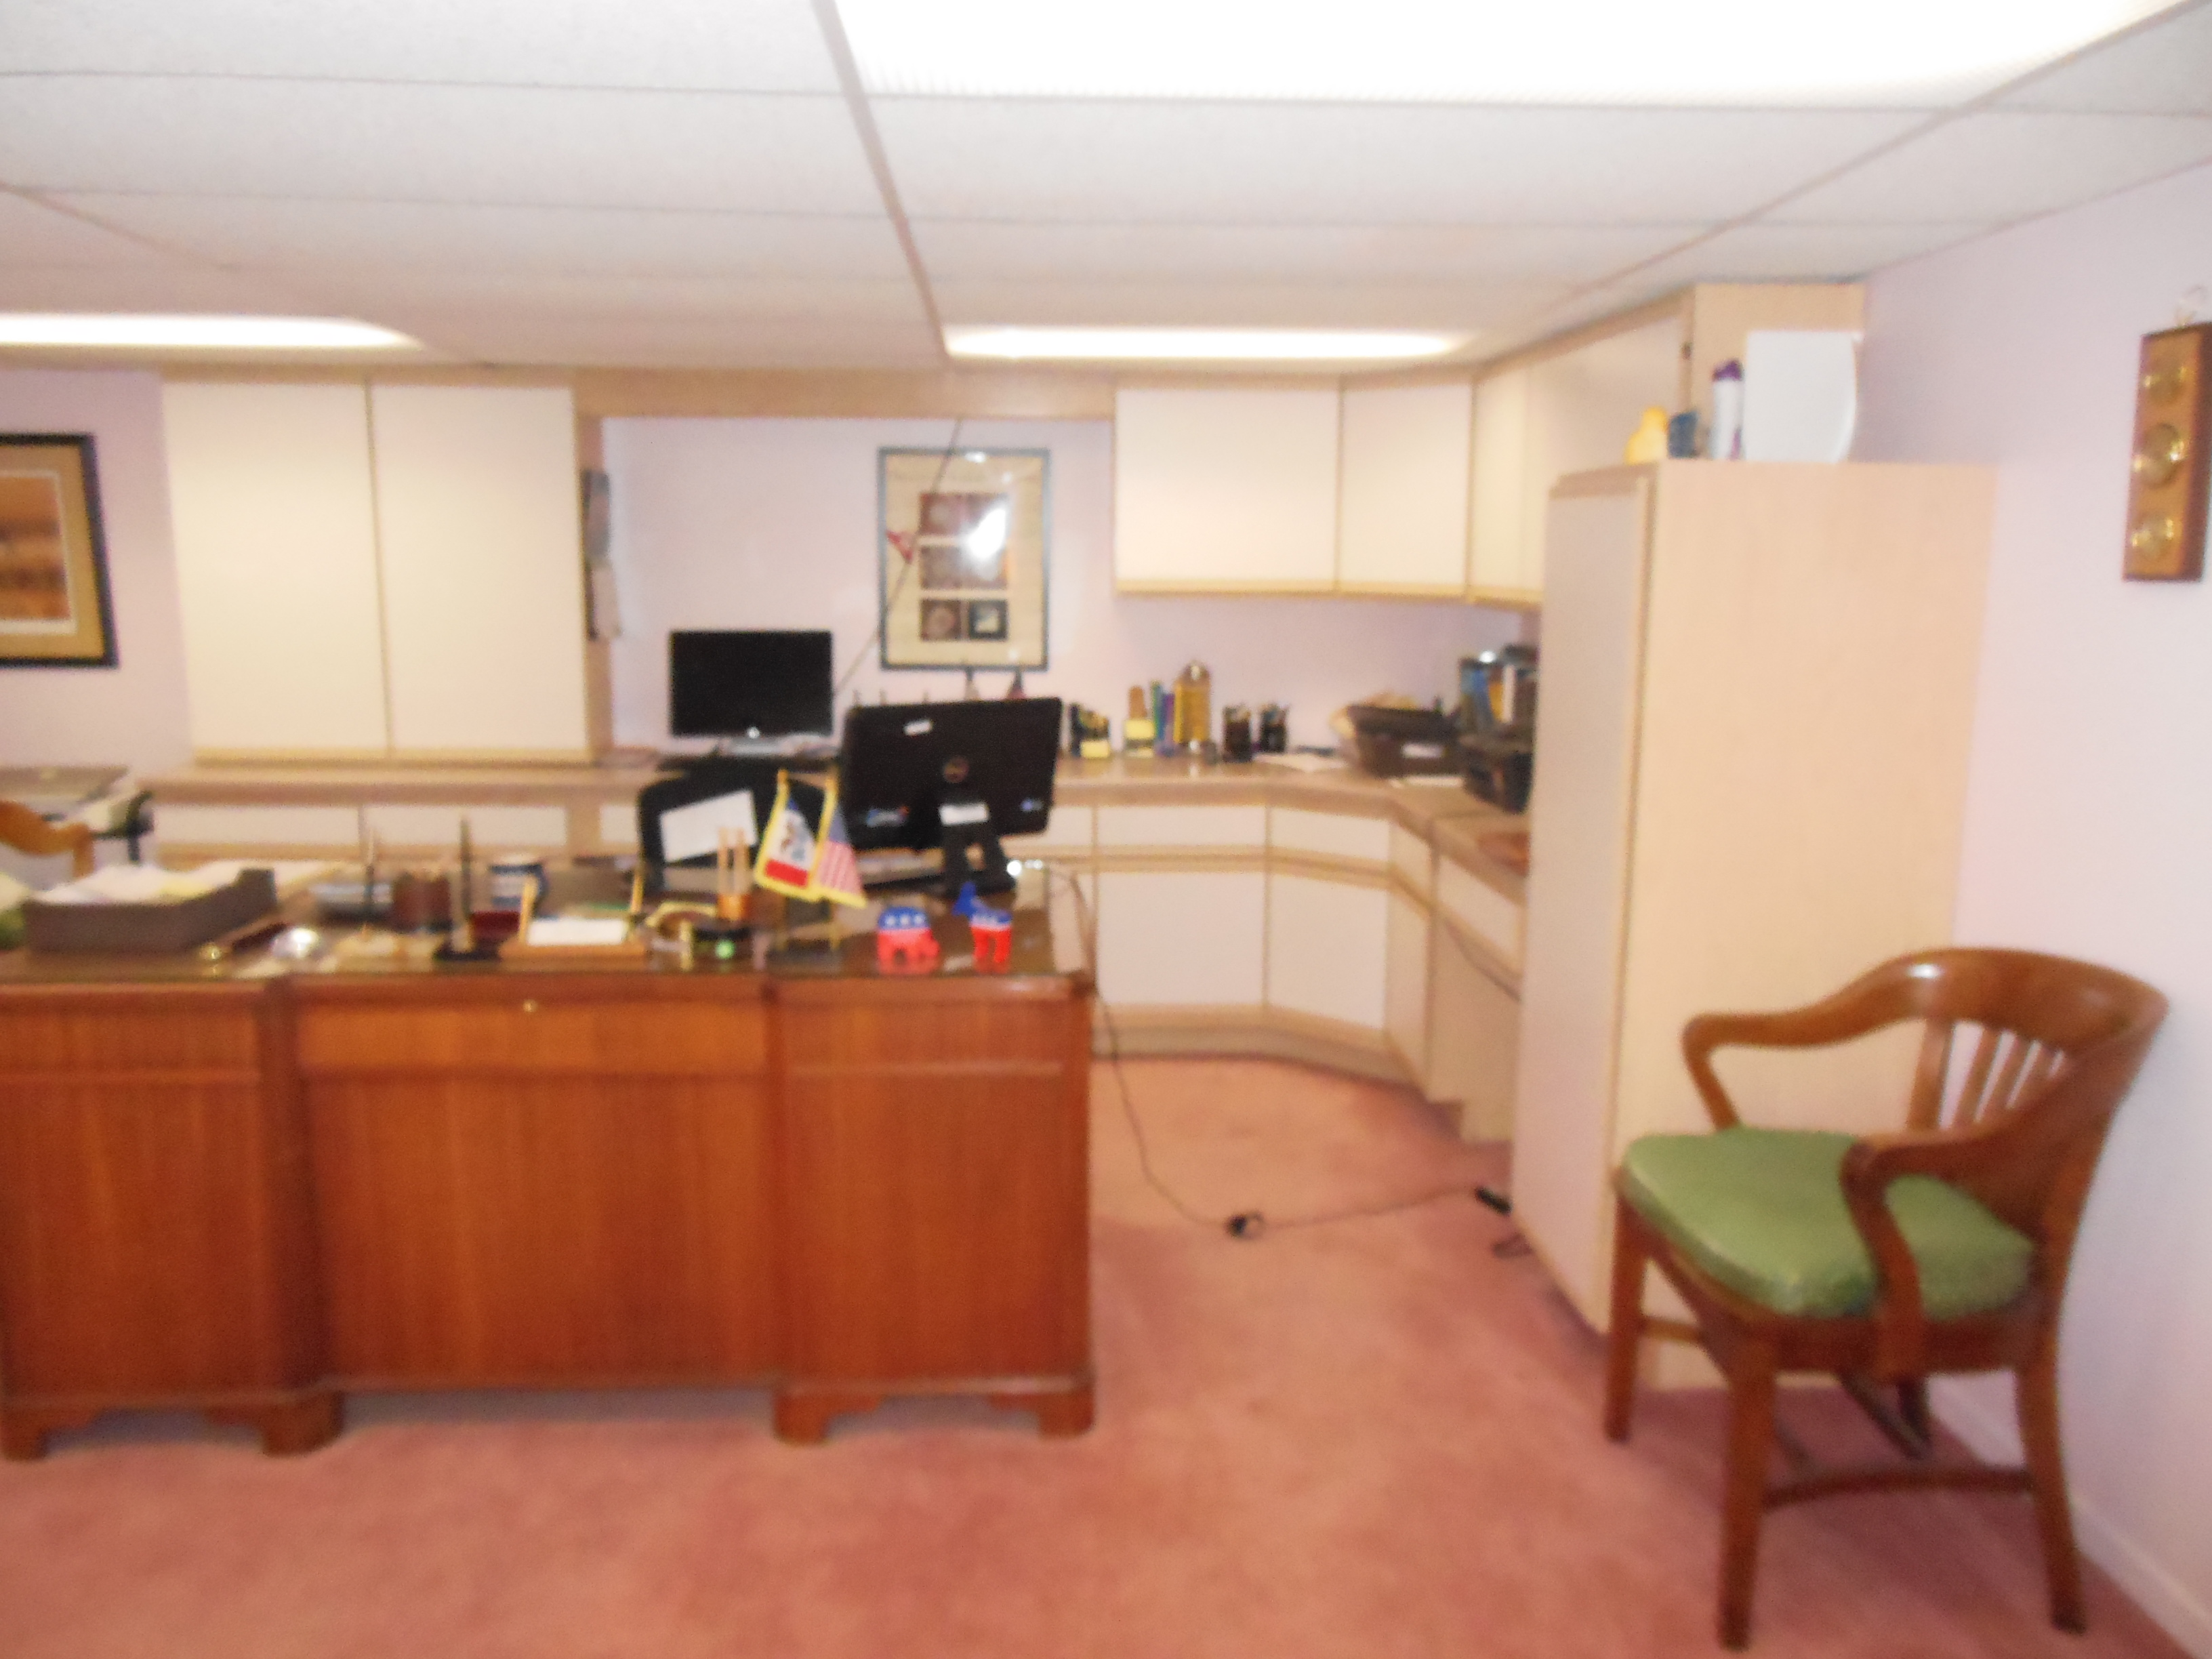 901 White St, office area